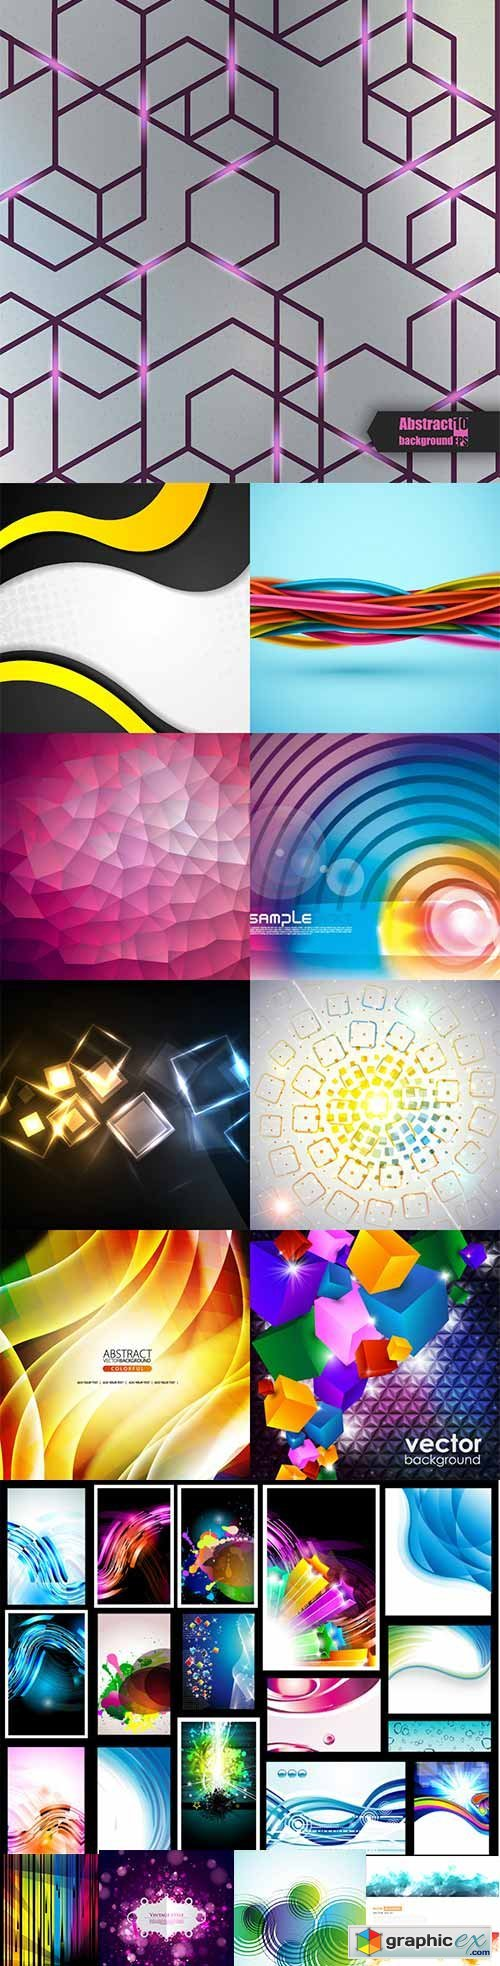 Bright colorful abstract backgrounds vector -45